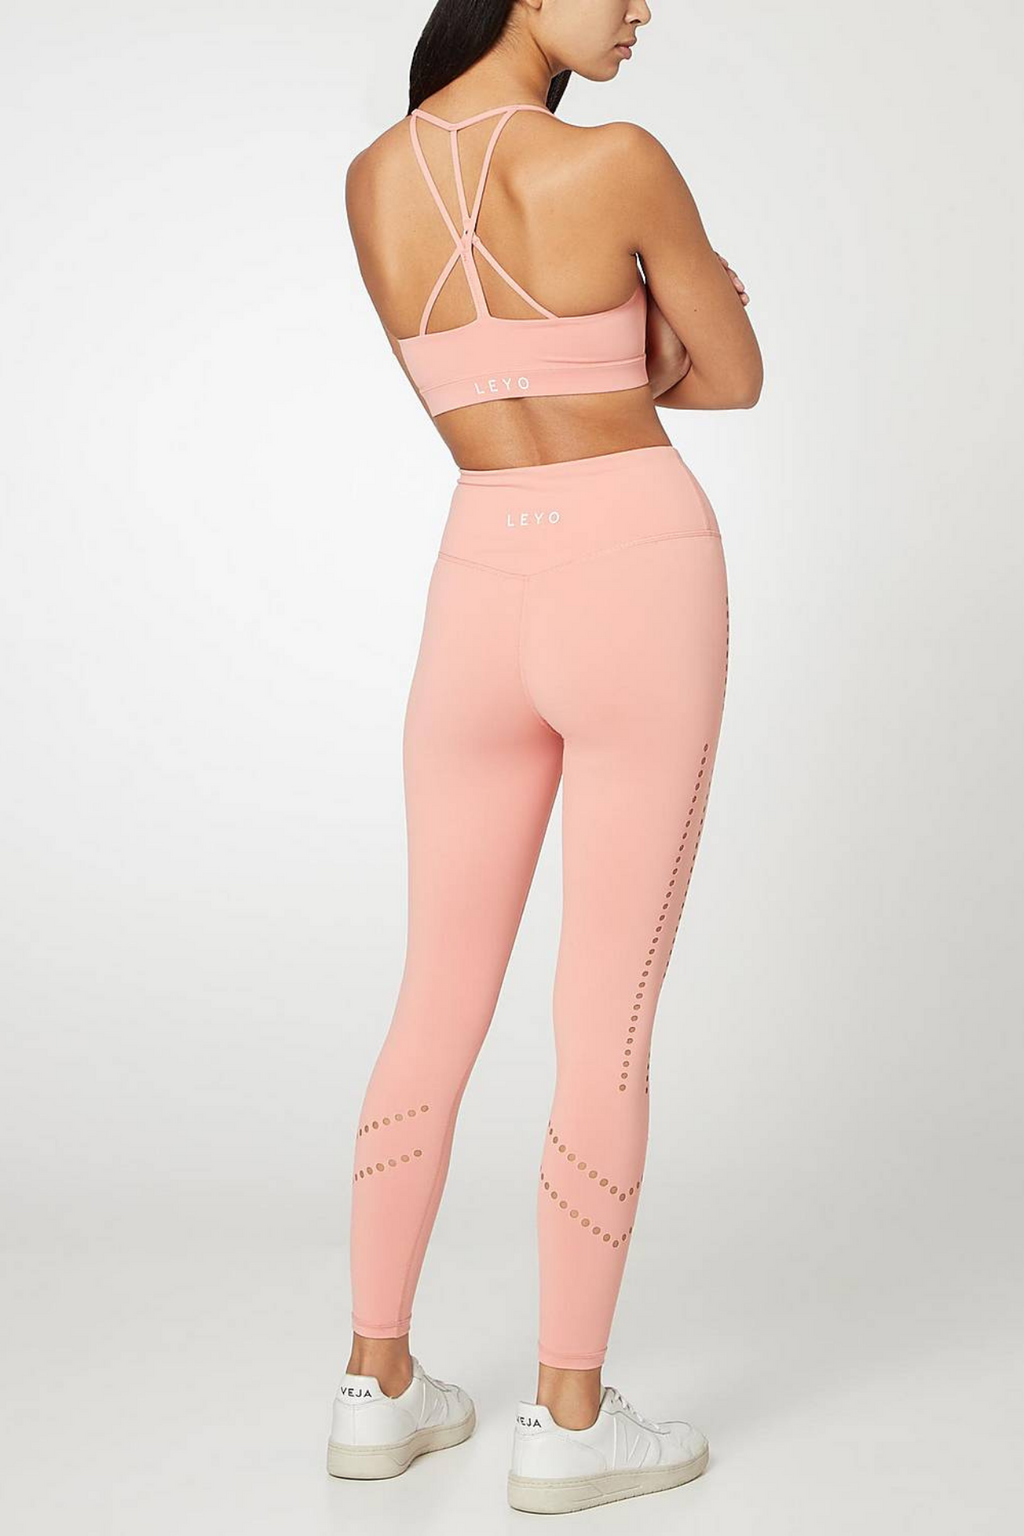 ISLA LEGGING - HIGH RISE 7/8